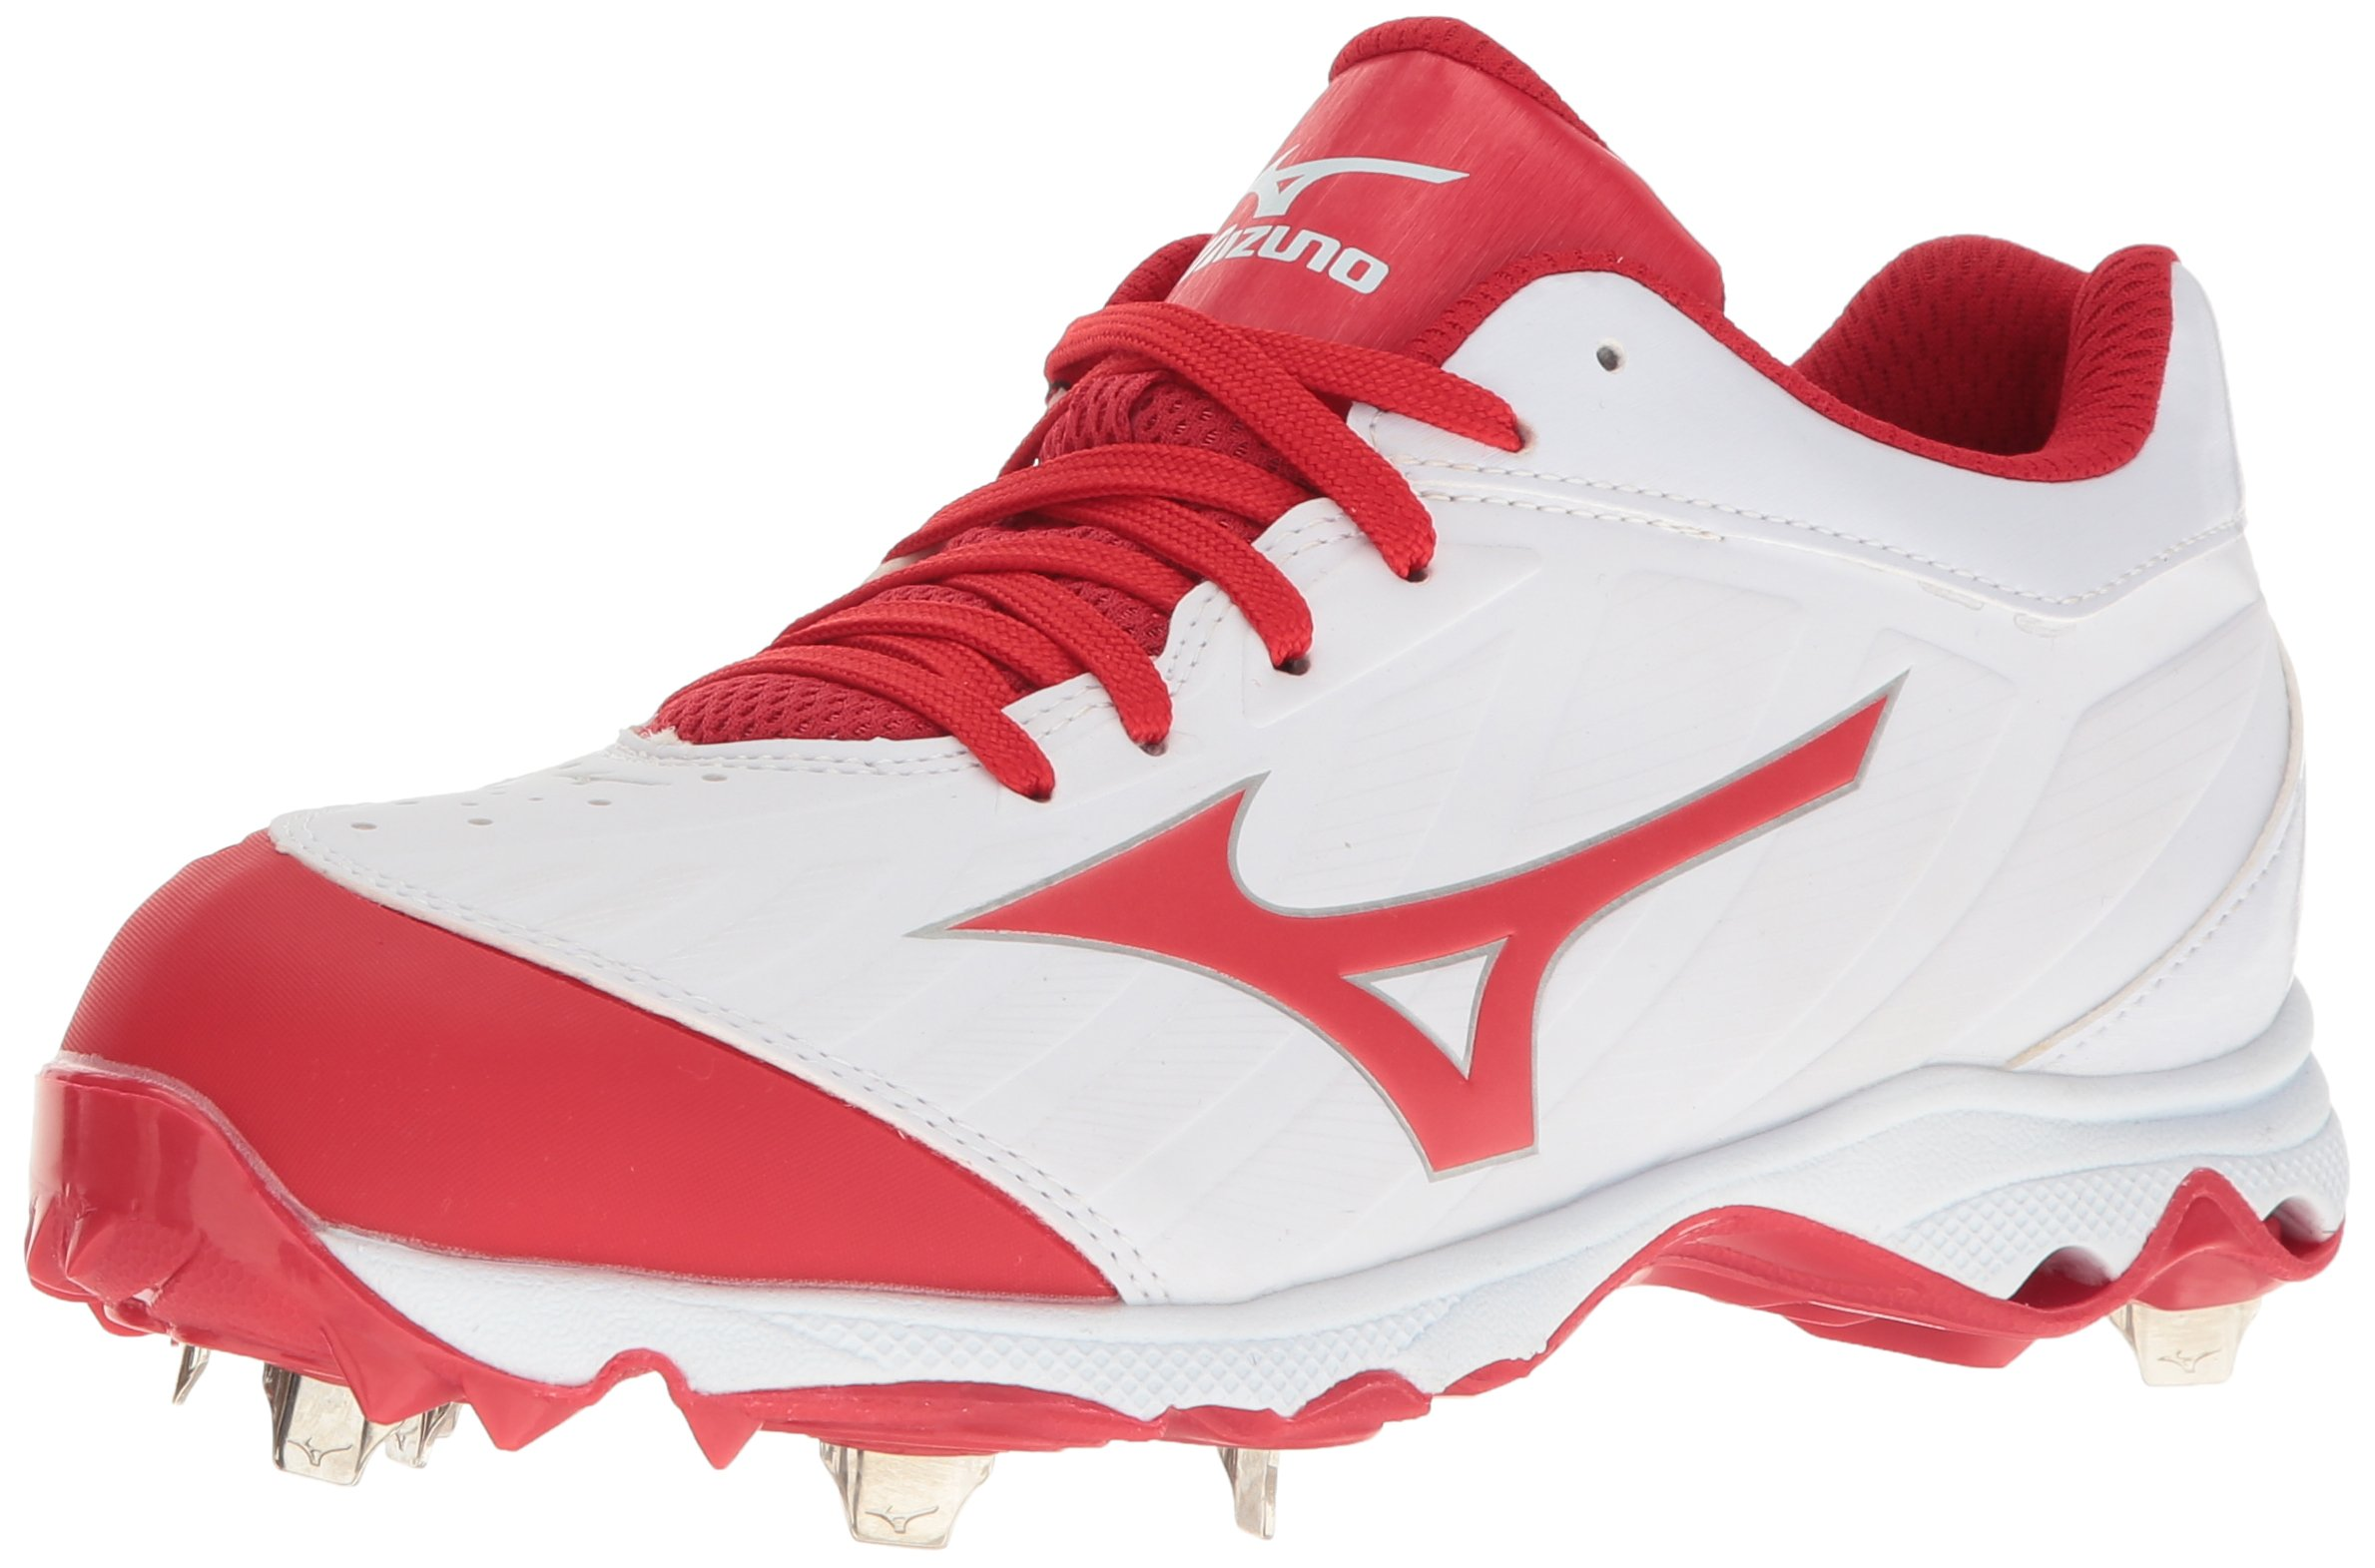 Mizuno Women's 9-spike advanced sweep 3 Softball Shoe, White-Red, 9.5 D US by Mizuno